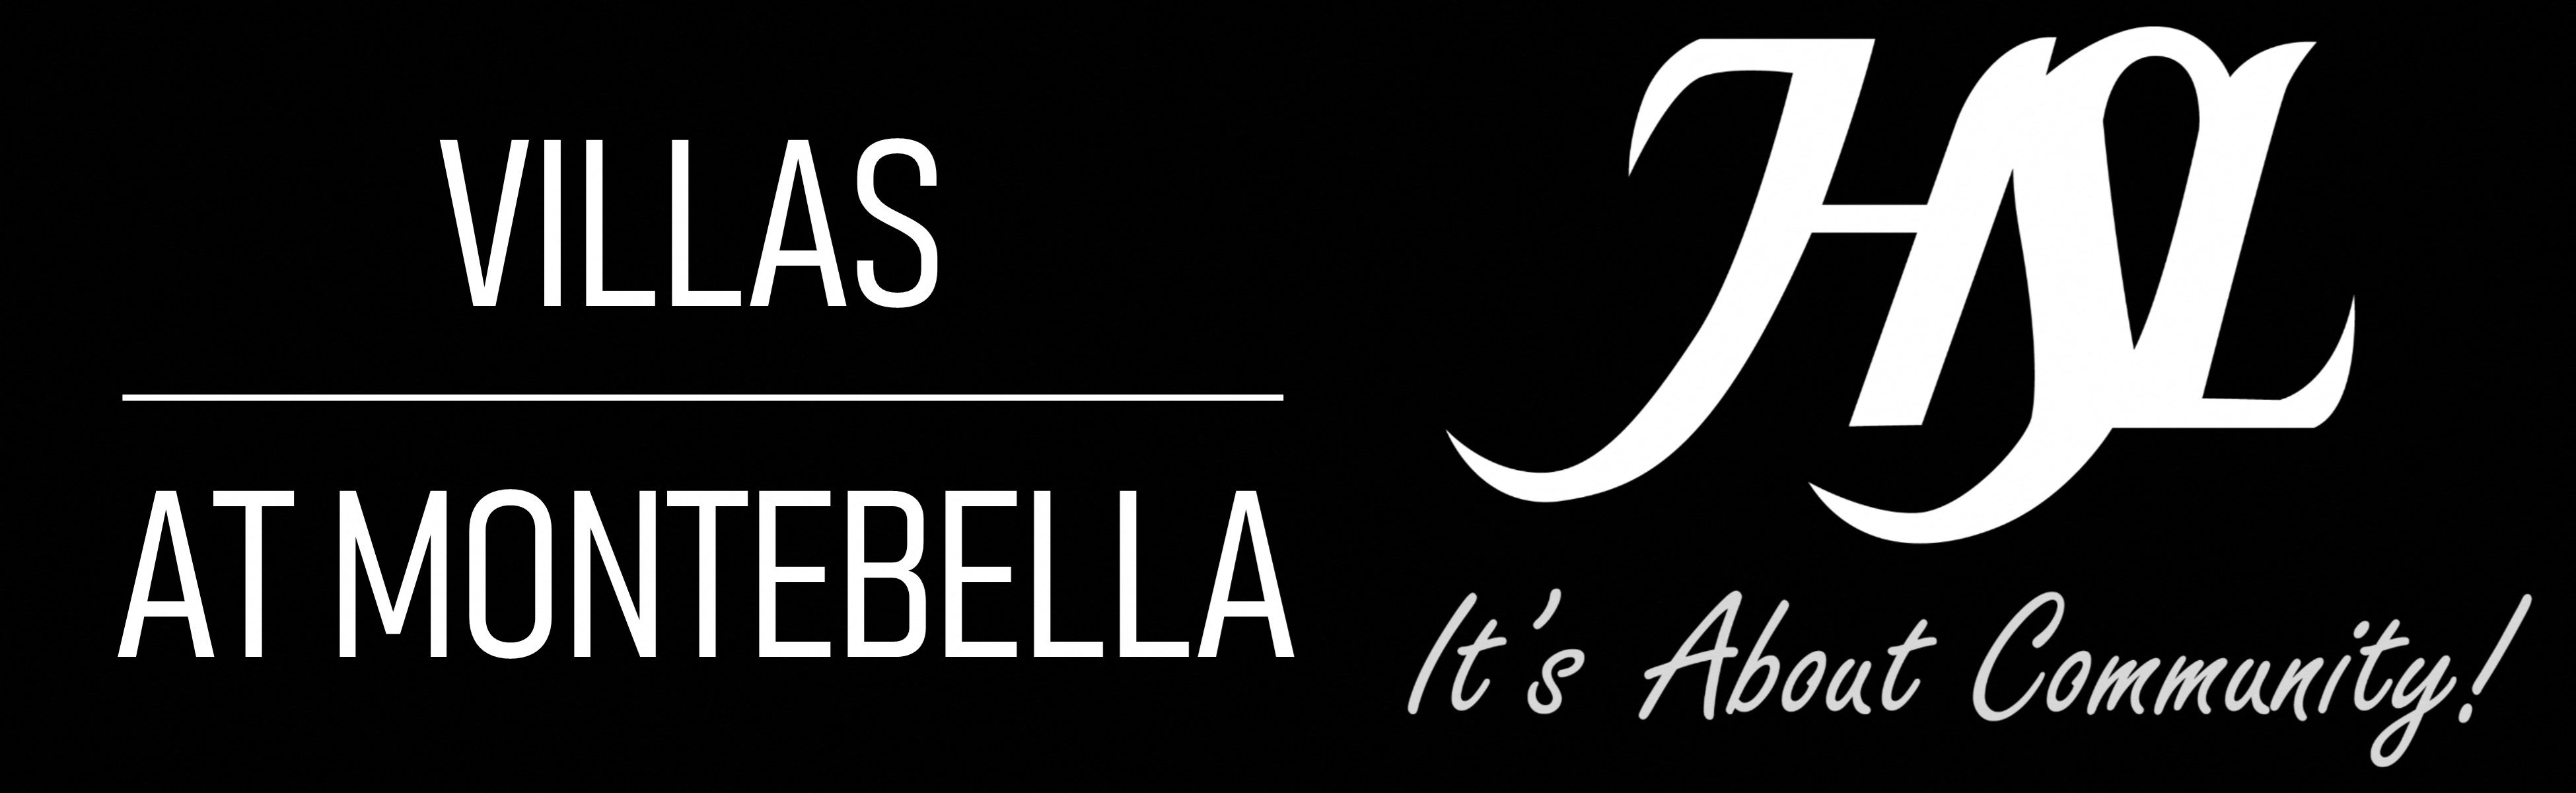 Villas at Montebella Logo